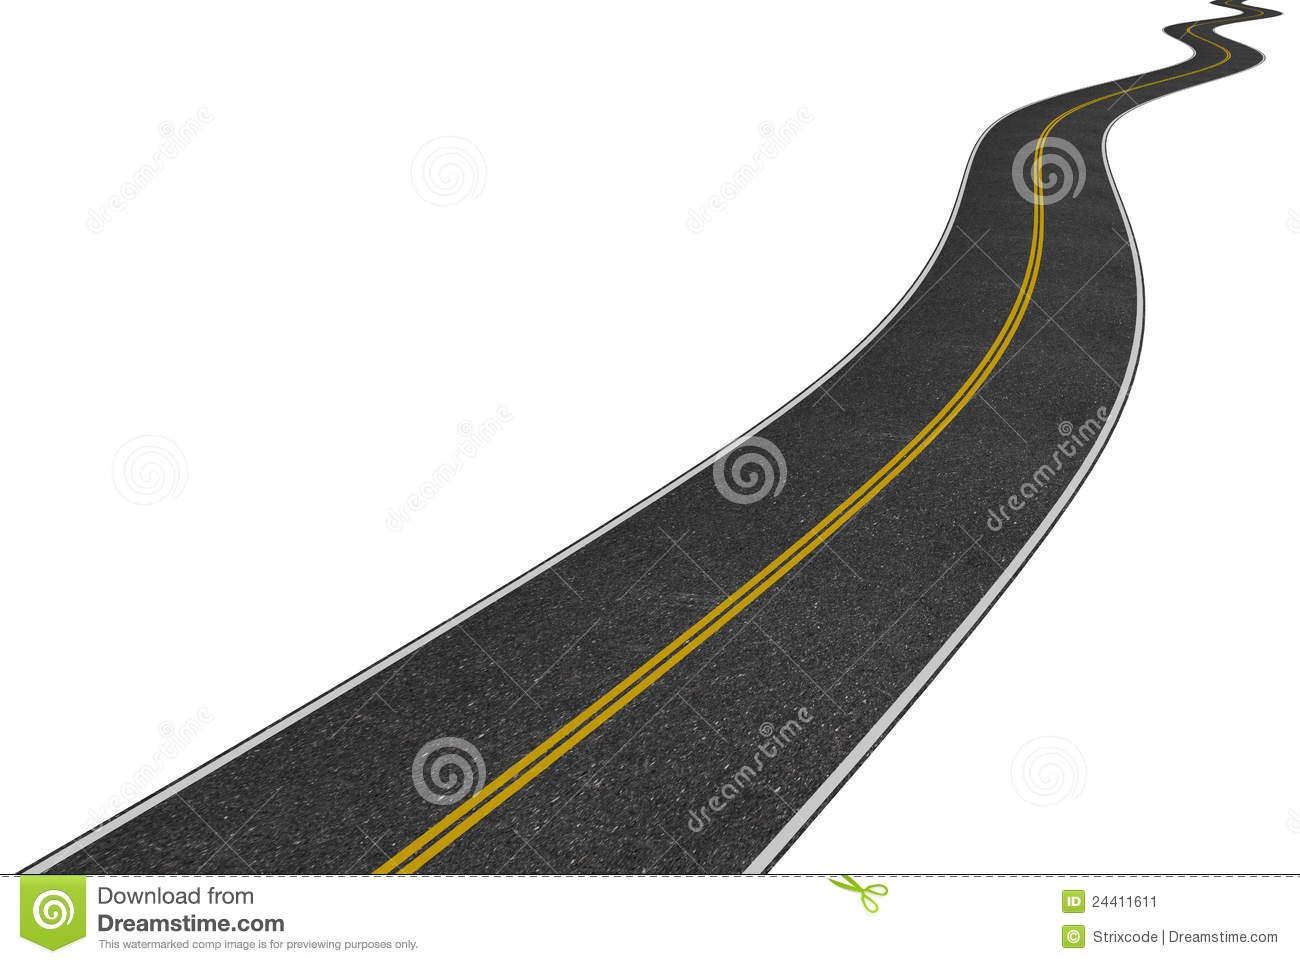 Winding Road Clipart Image of a long winding road